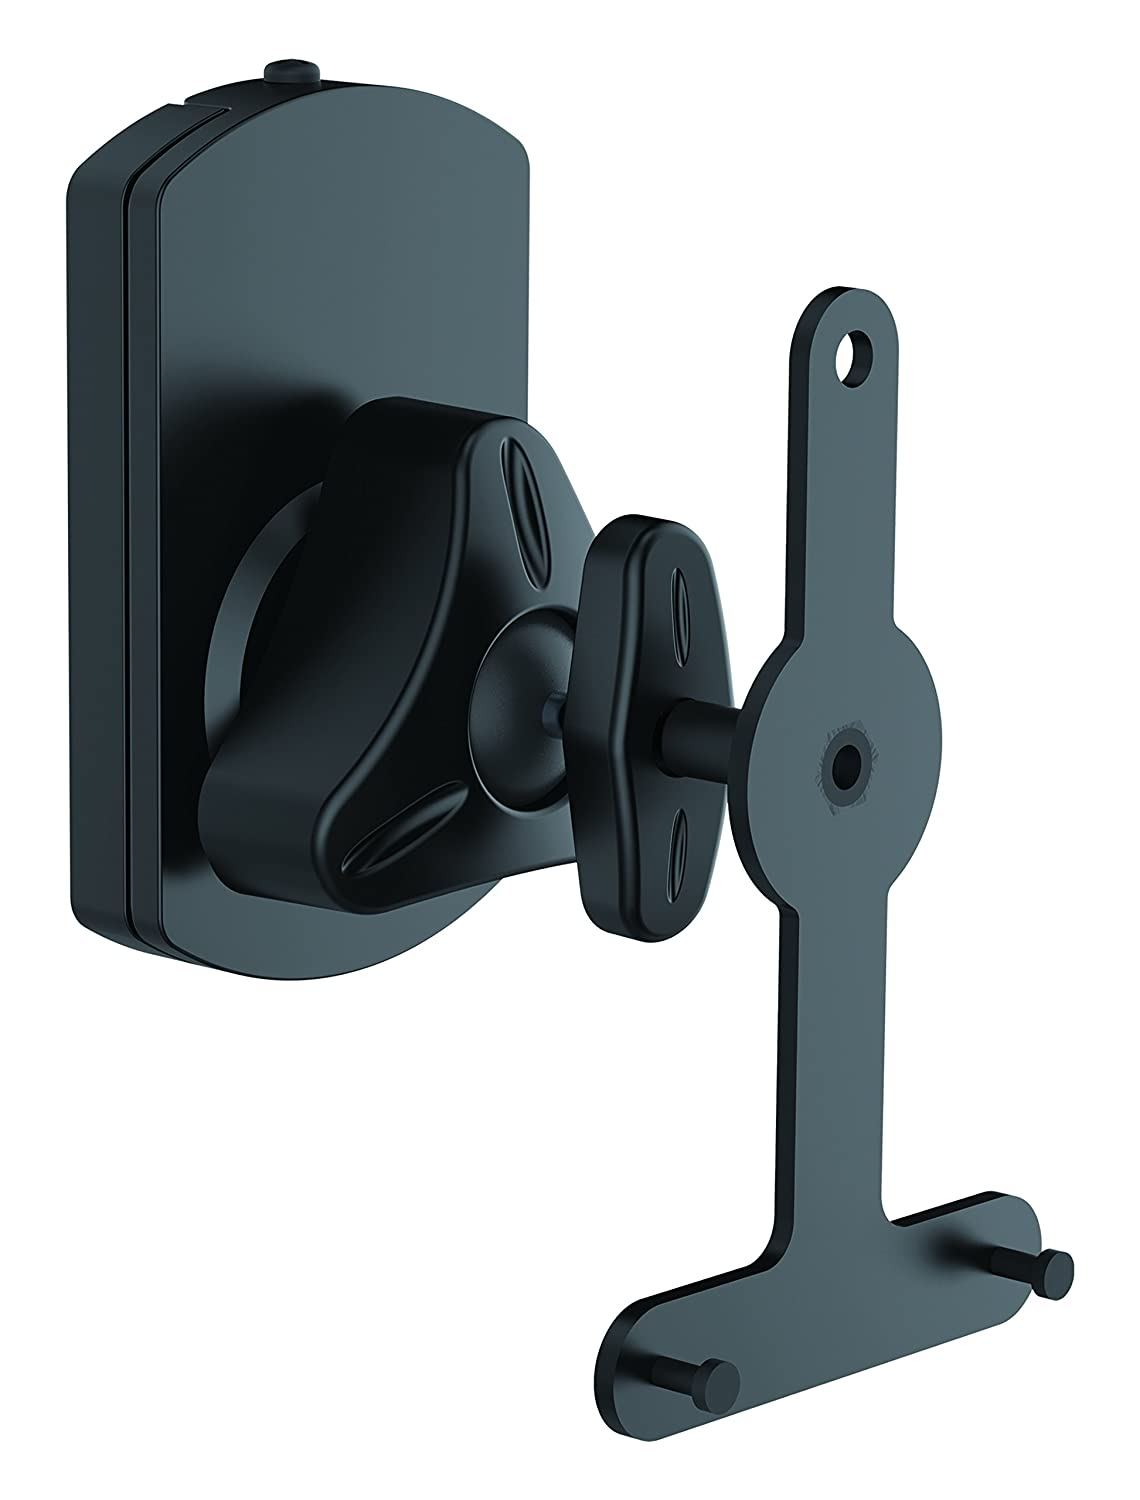 Universal Wall Mount Speaker Stand - Pair of Heavy Duty Steel Metal Home Studio Adjustable Speaker Racks For Sonos PLAY 1, PLAY 3 Wireless, Other Home Theater Surround Sound Speakers - Pyle PSTNDSON08